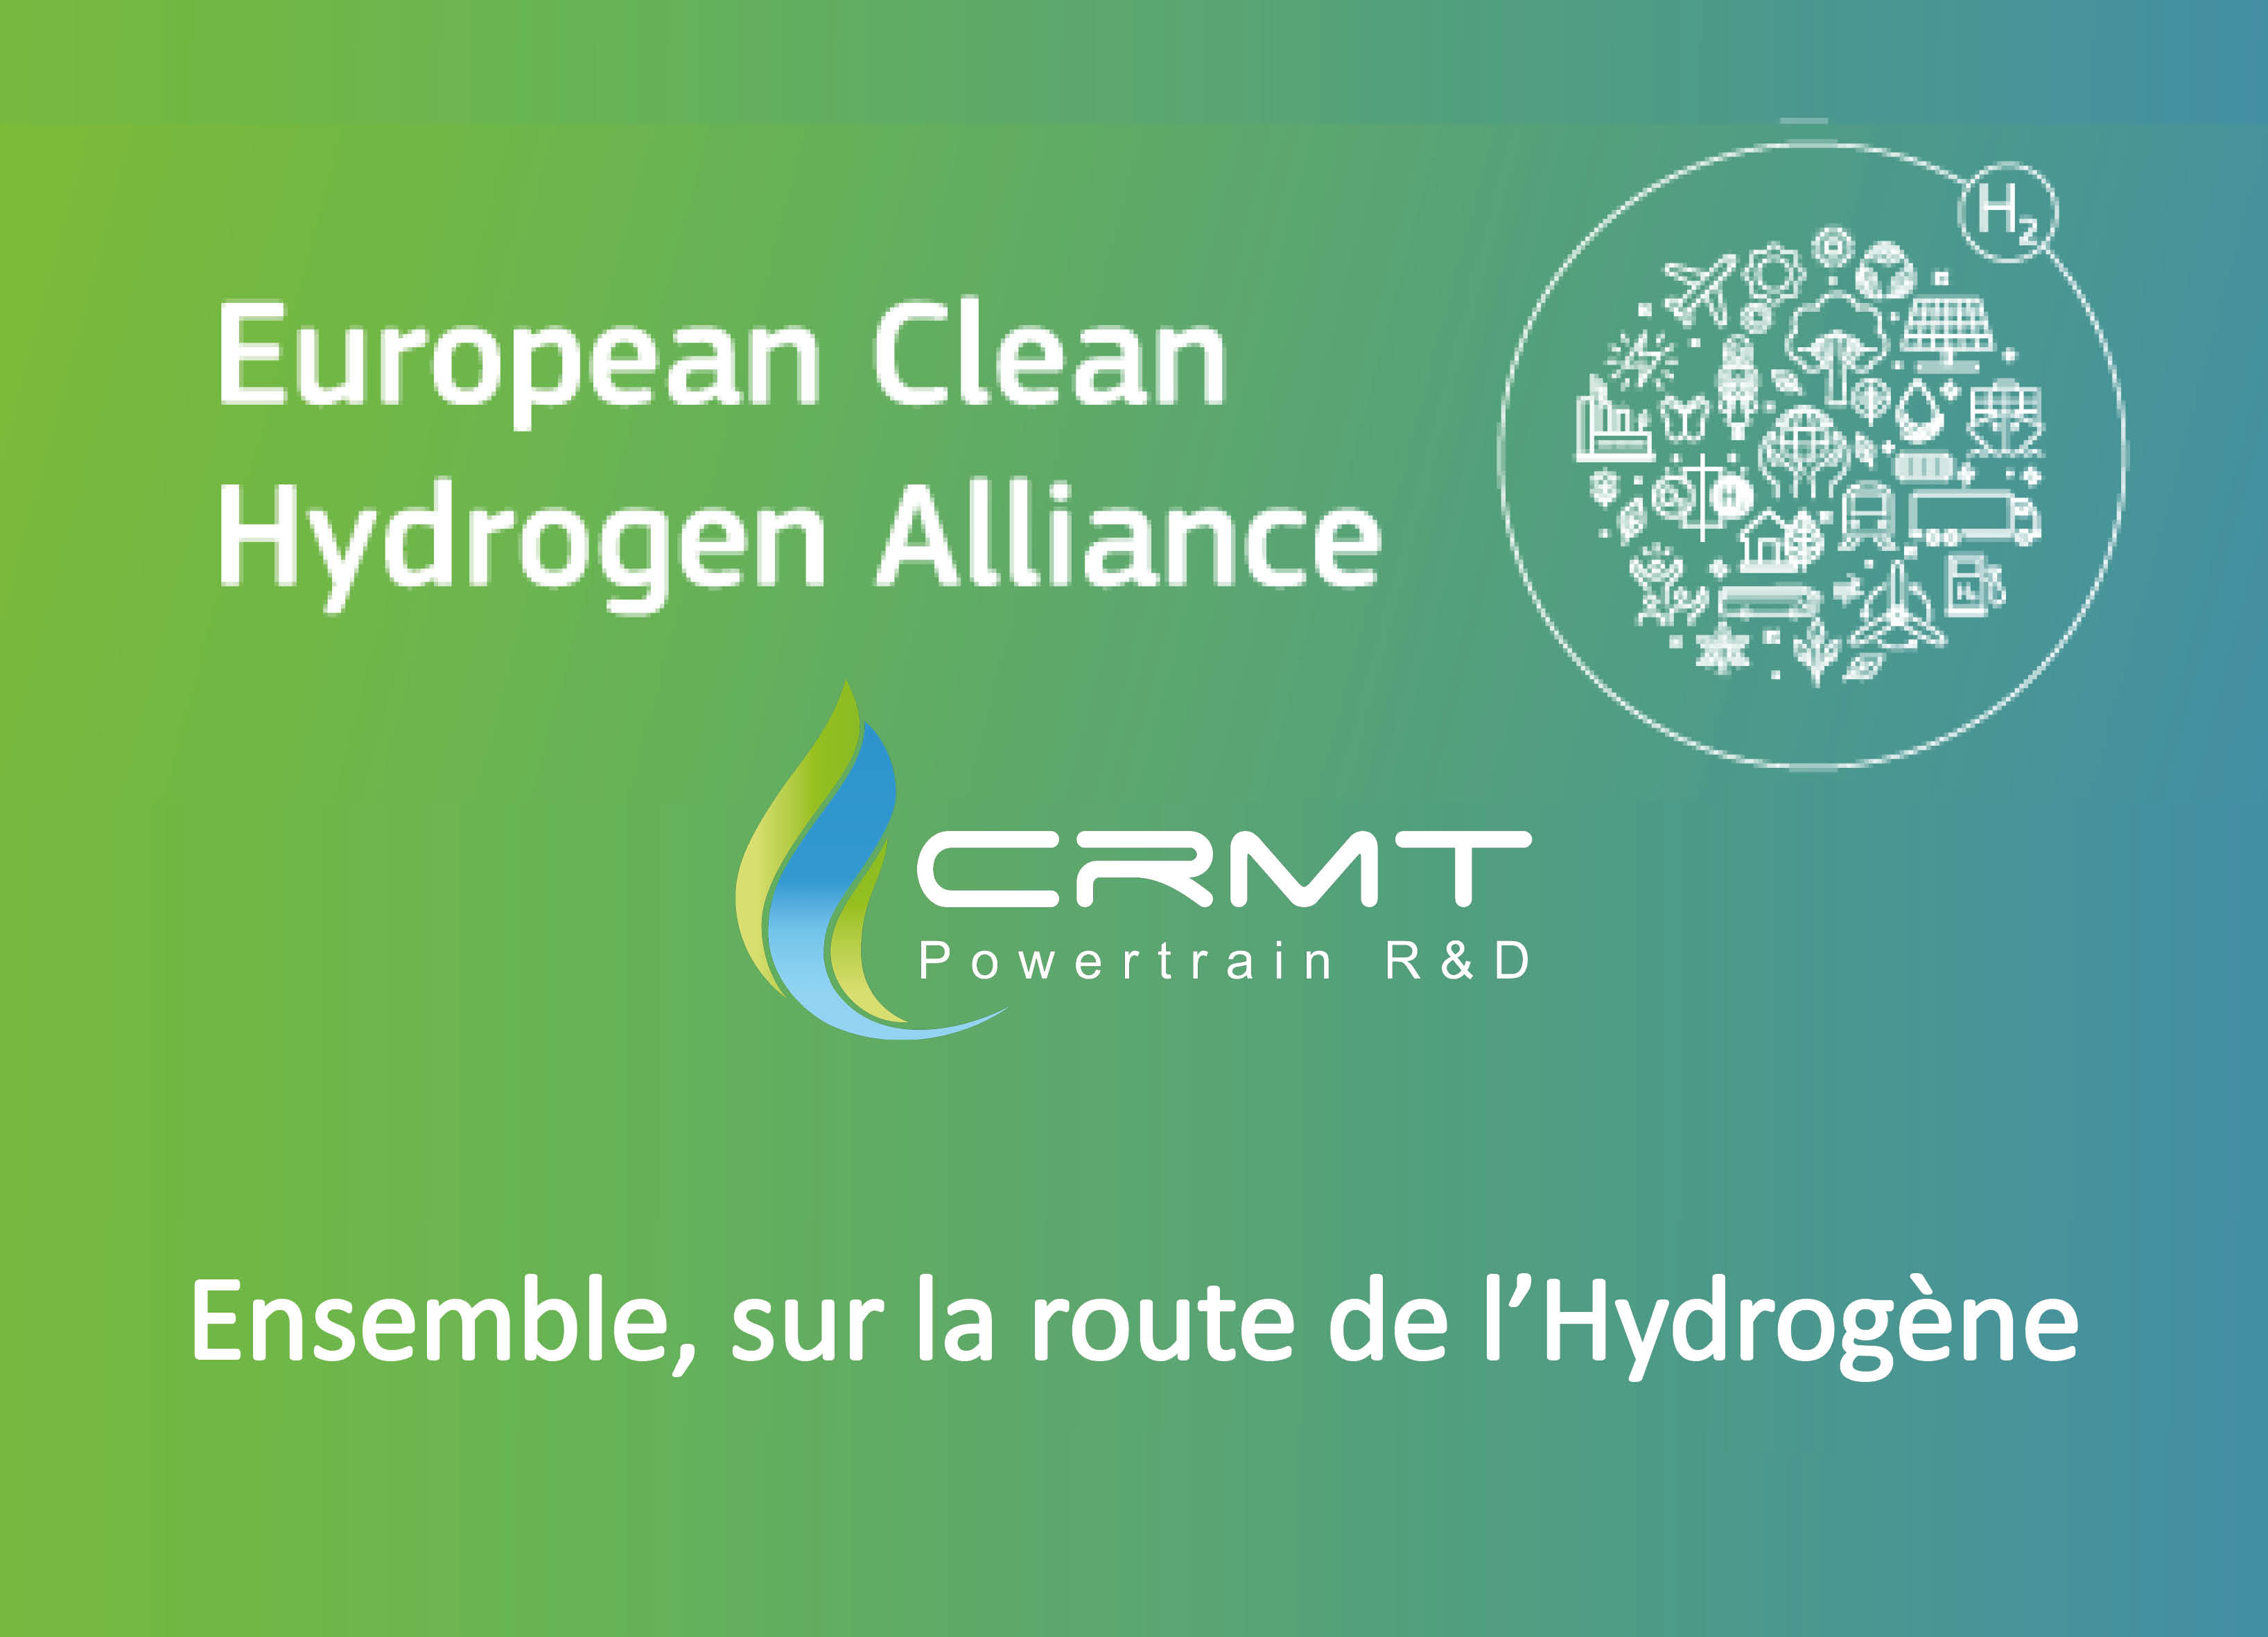 HYDROGENE EUROPE VERT MOBILITE TRANSPORT ALLIANCE EXPERT CRMT